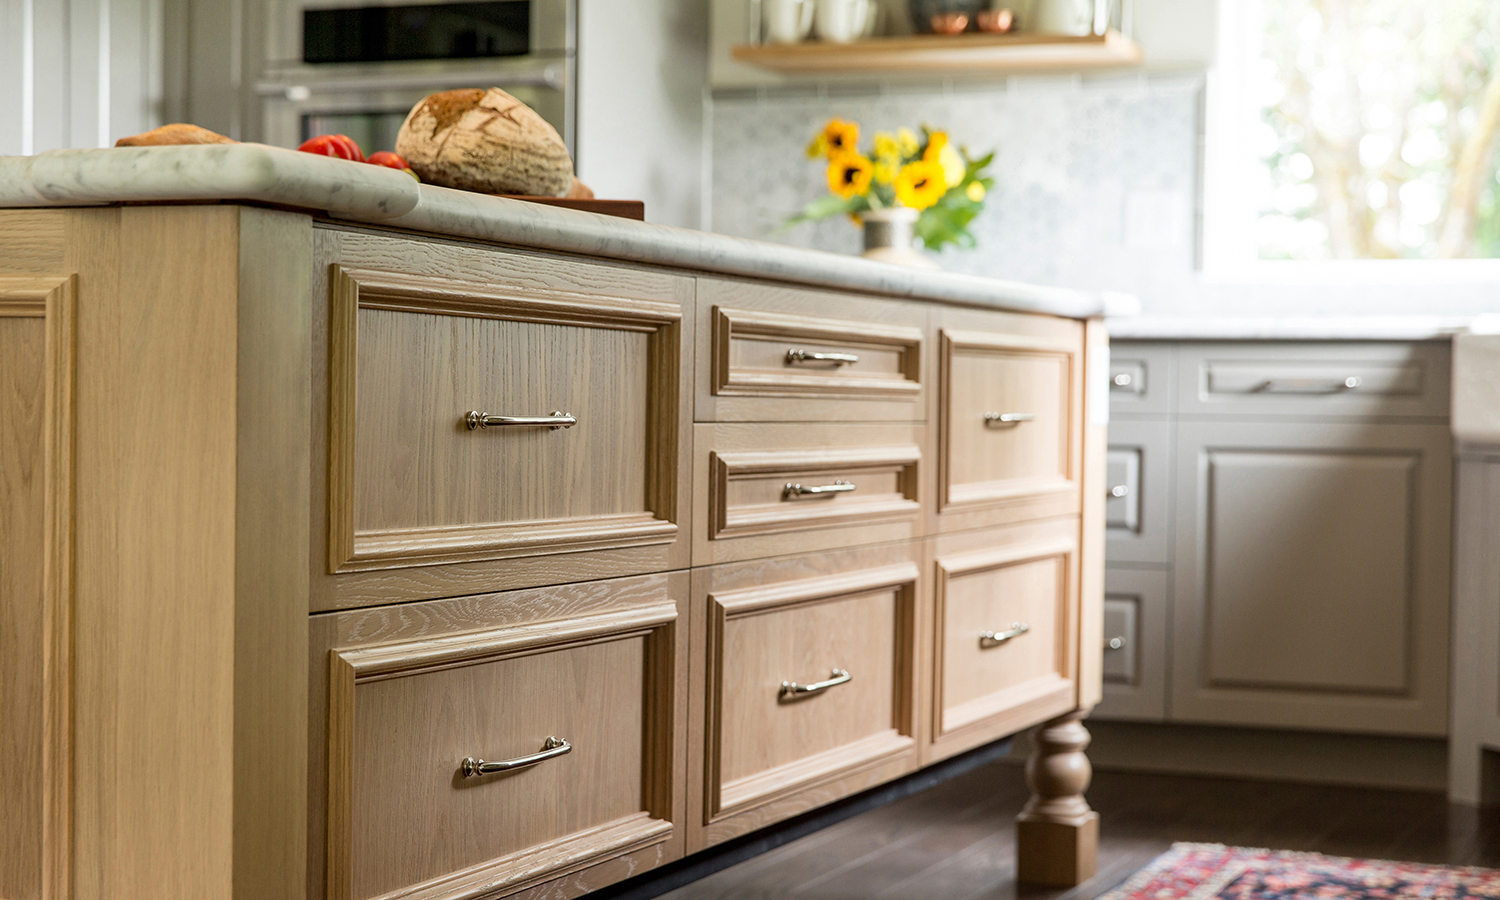 Pheasant Hill kitchen design island detail.jpg